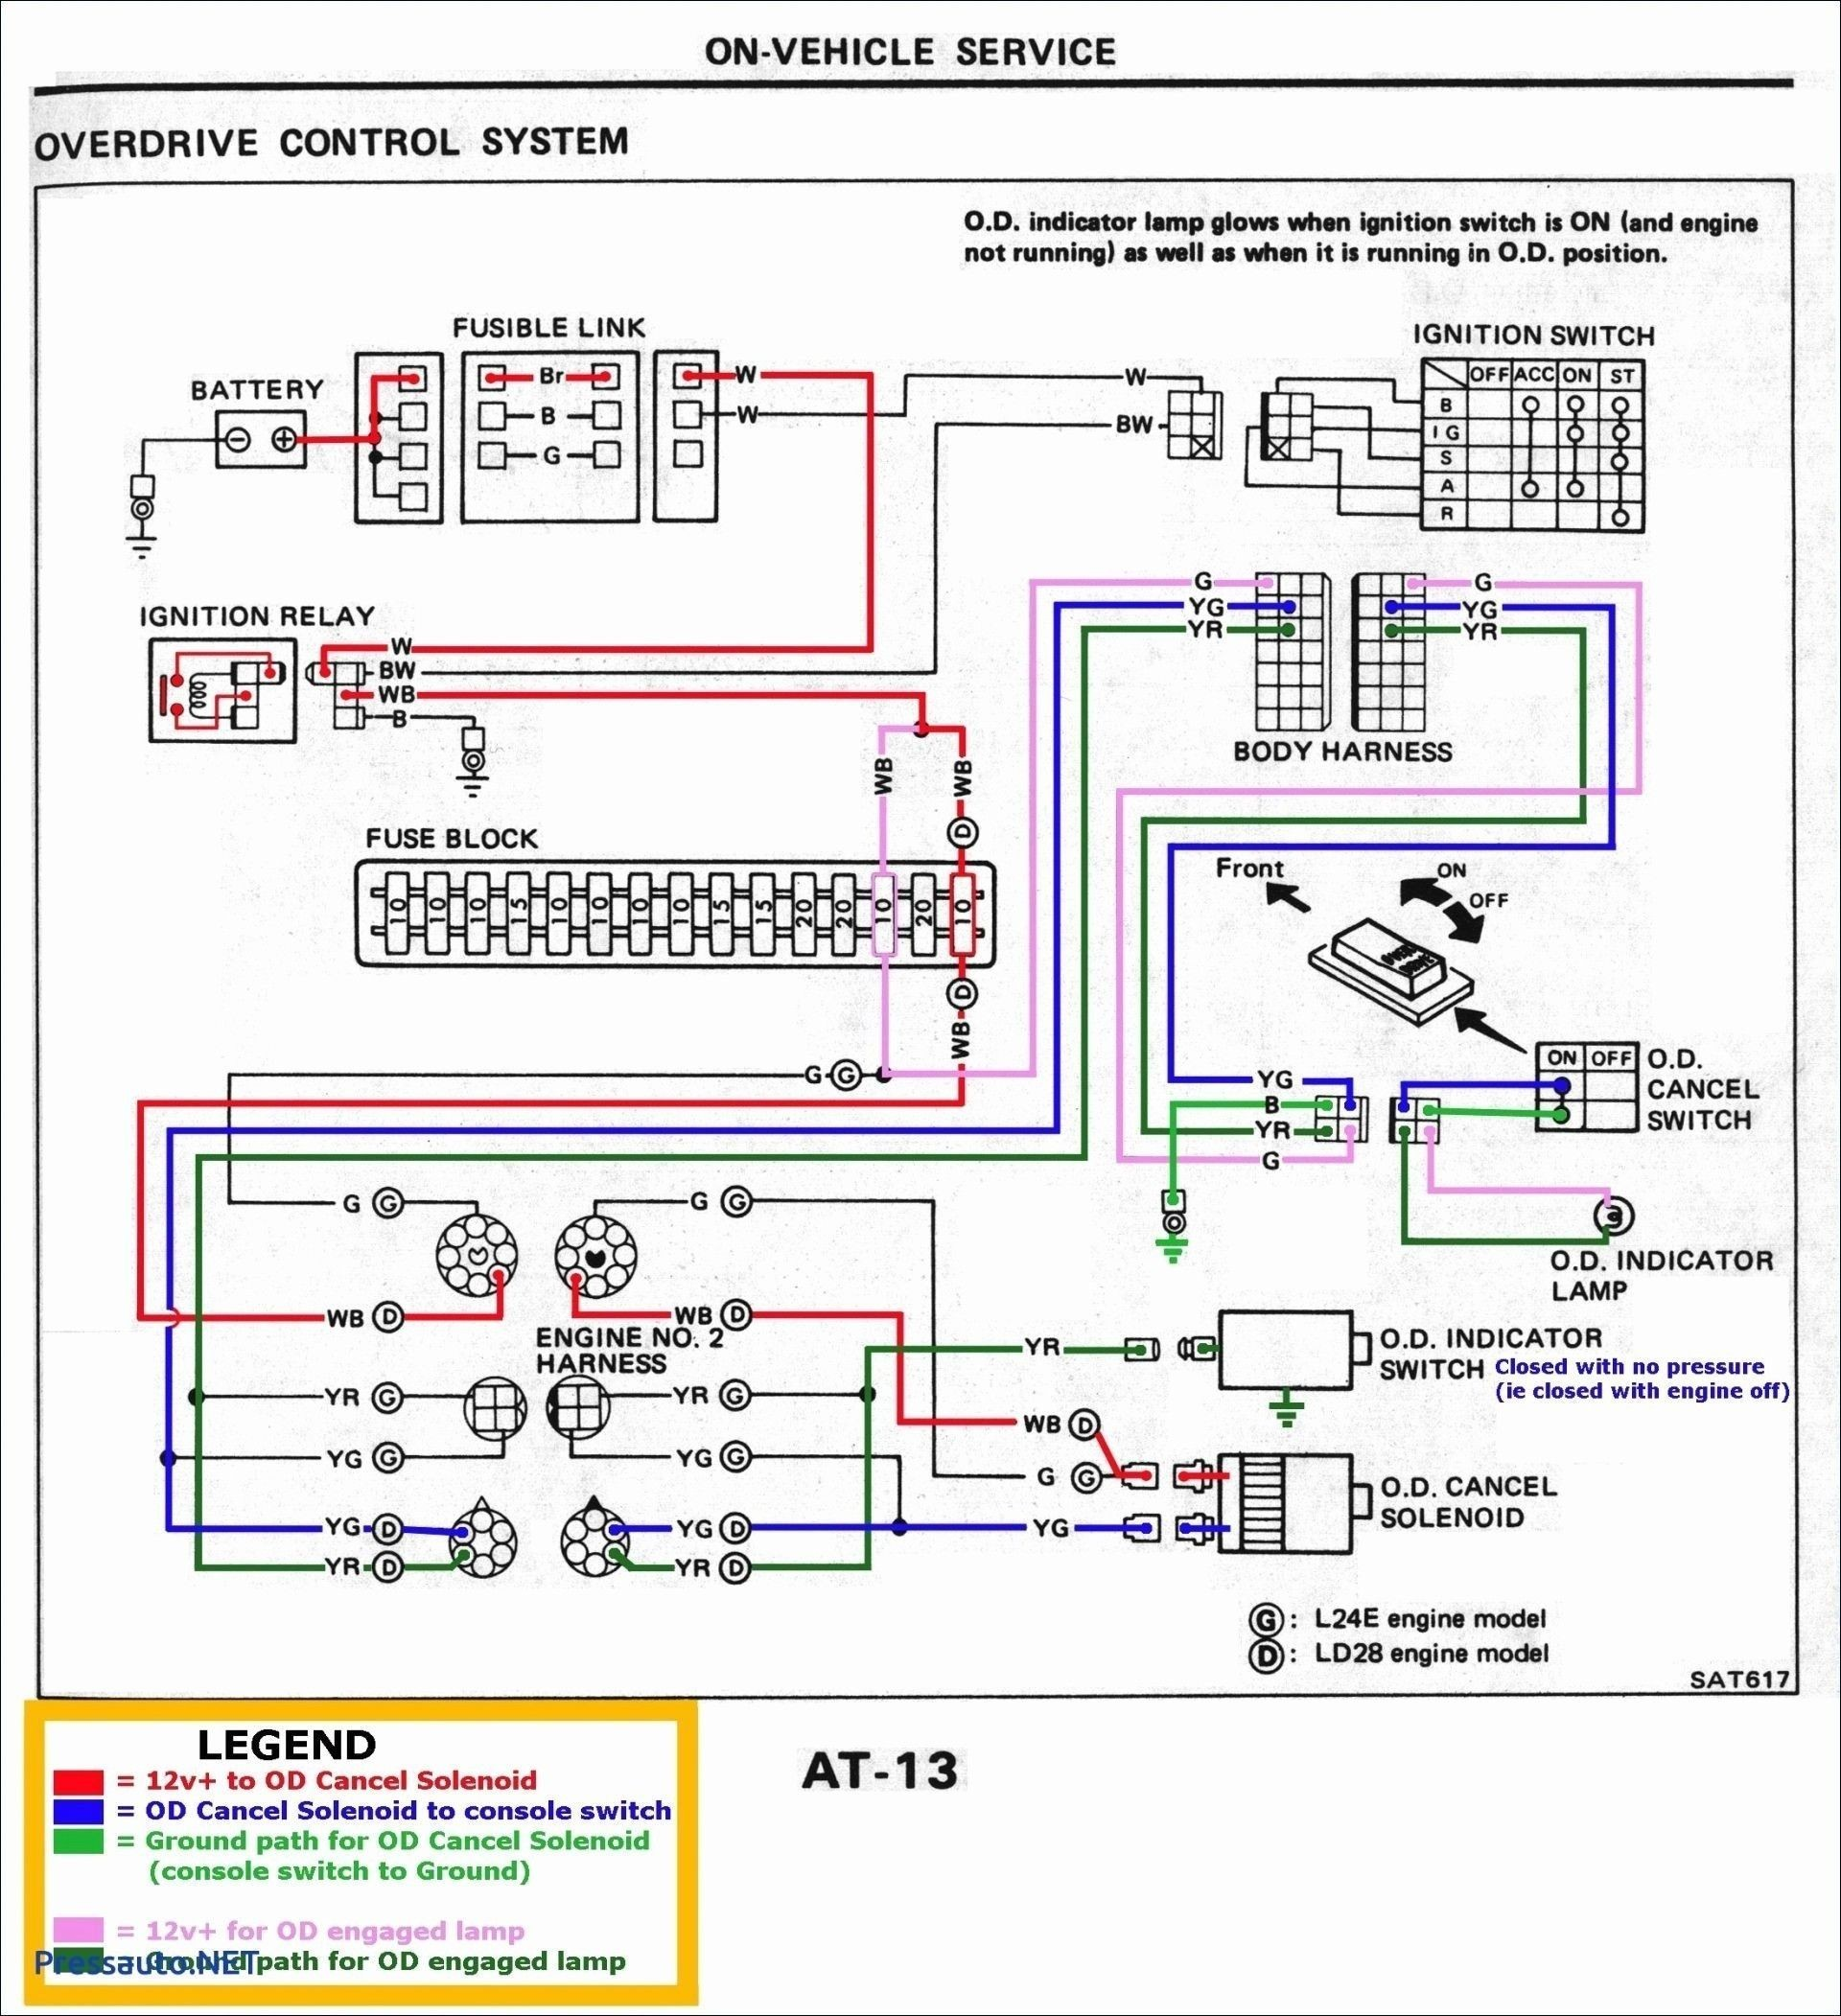 Wiring Diagram for A 2 Speed whole House Fan Elegant Wiring Diagram astra H Diagrams Digramssample Of Wiring Diagram for A 2 Speed whole House Fan